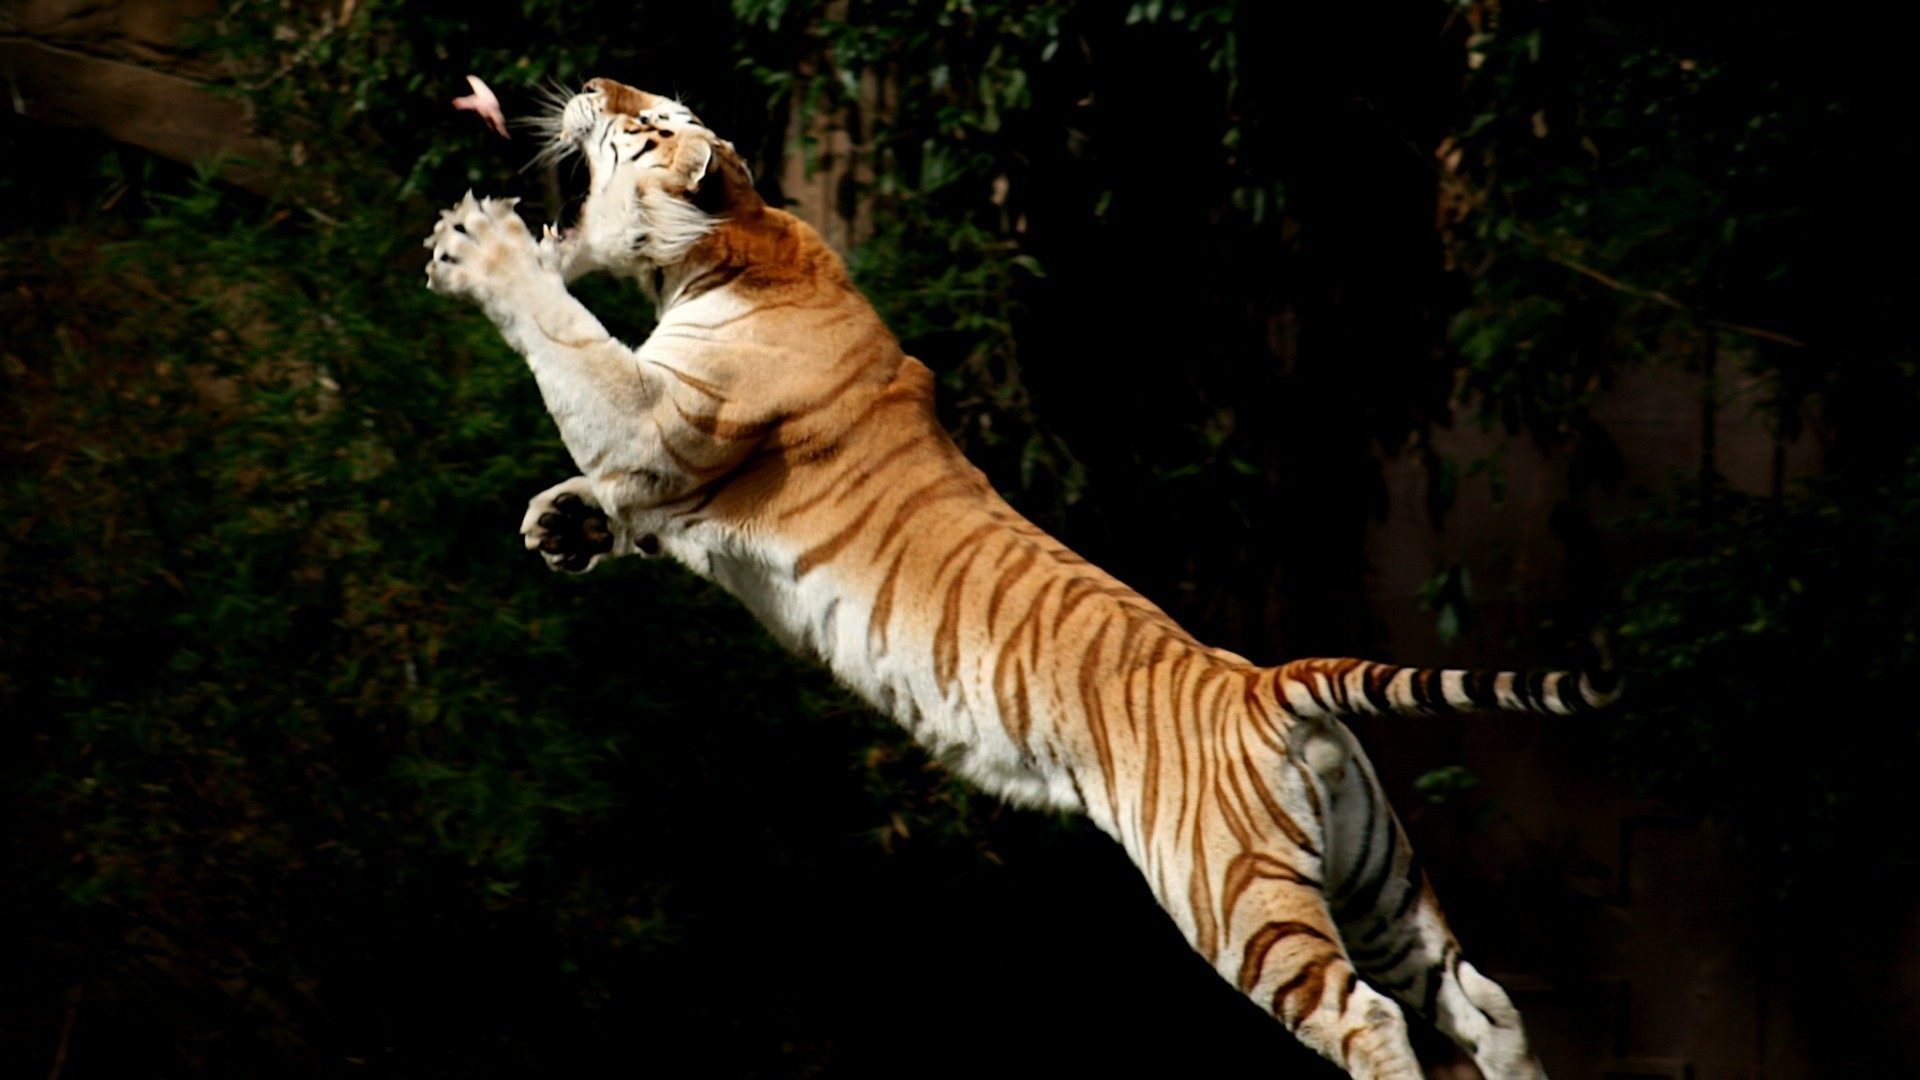 animals birds jumping tigers wallpaper | allwallpaper.in #1957 | pc | en